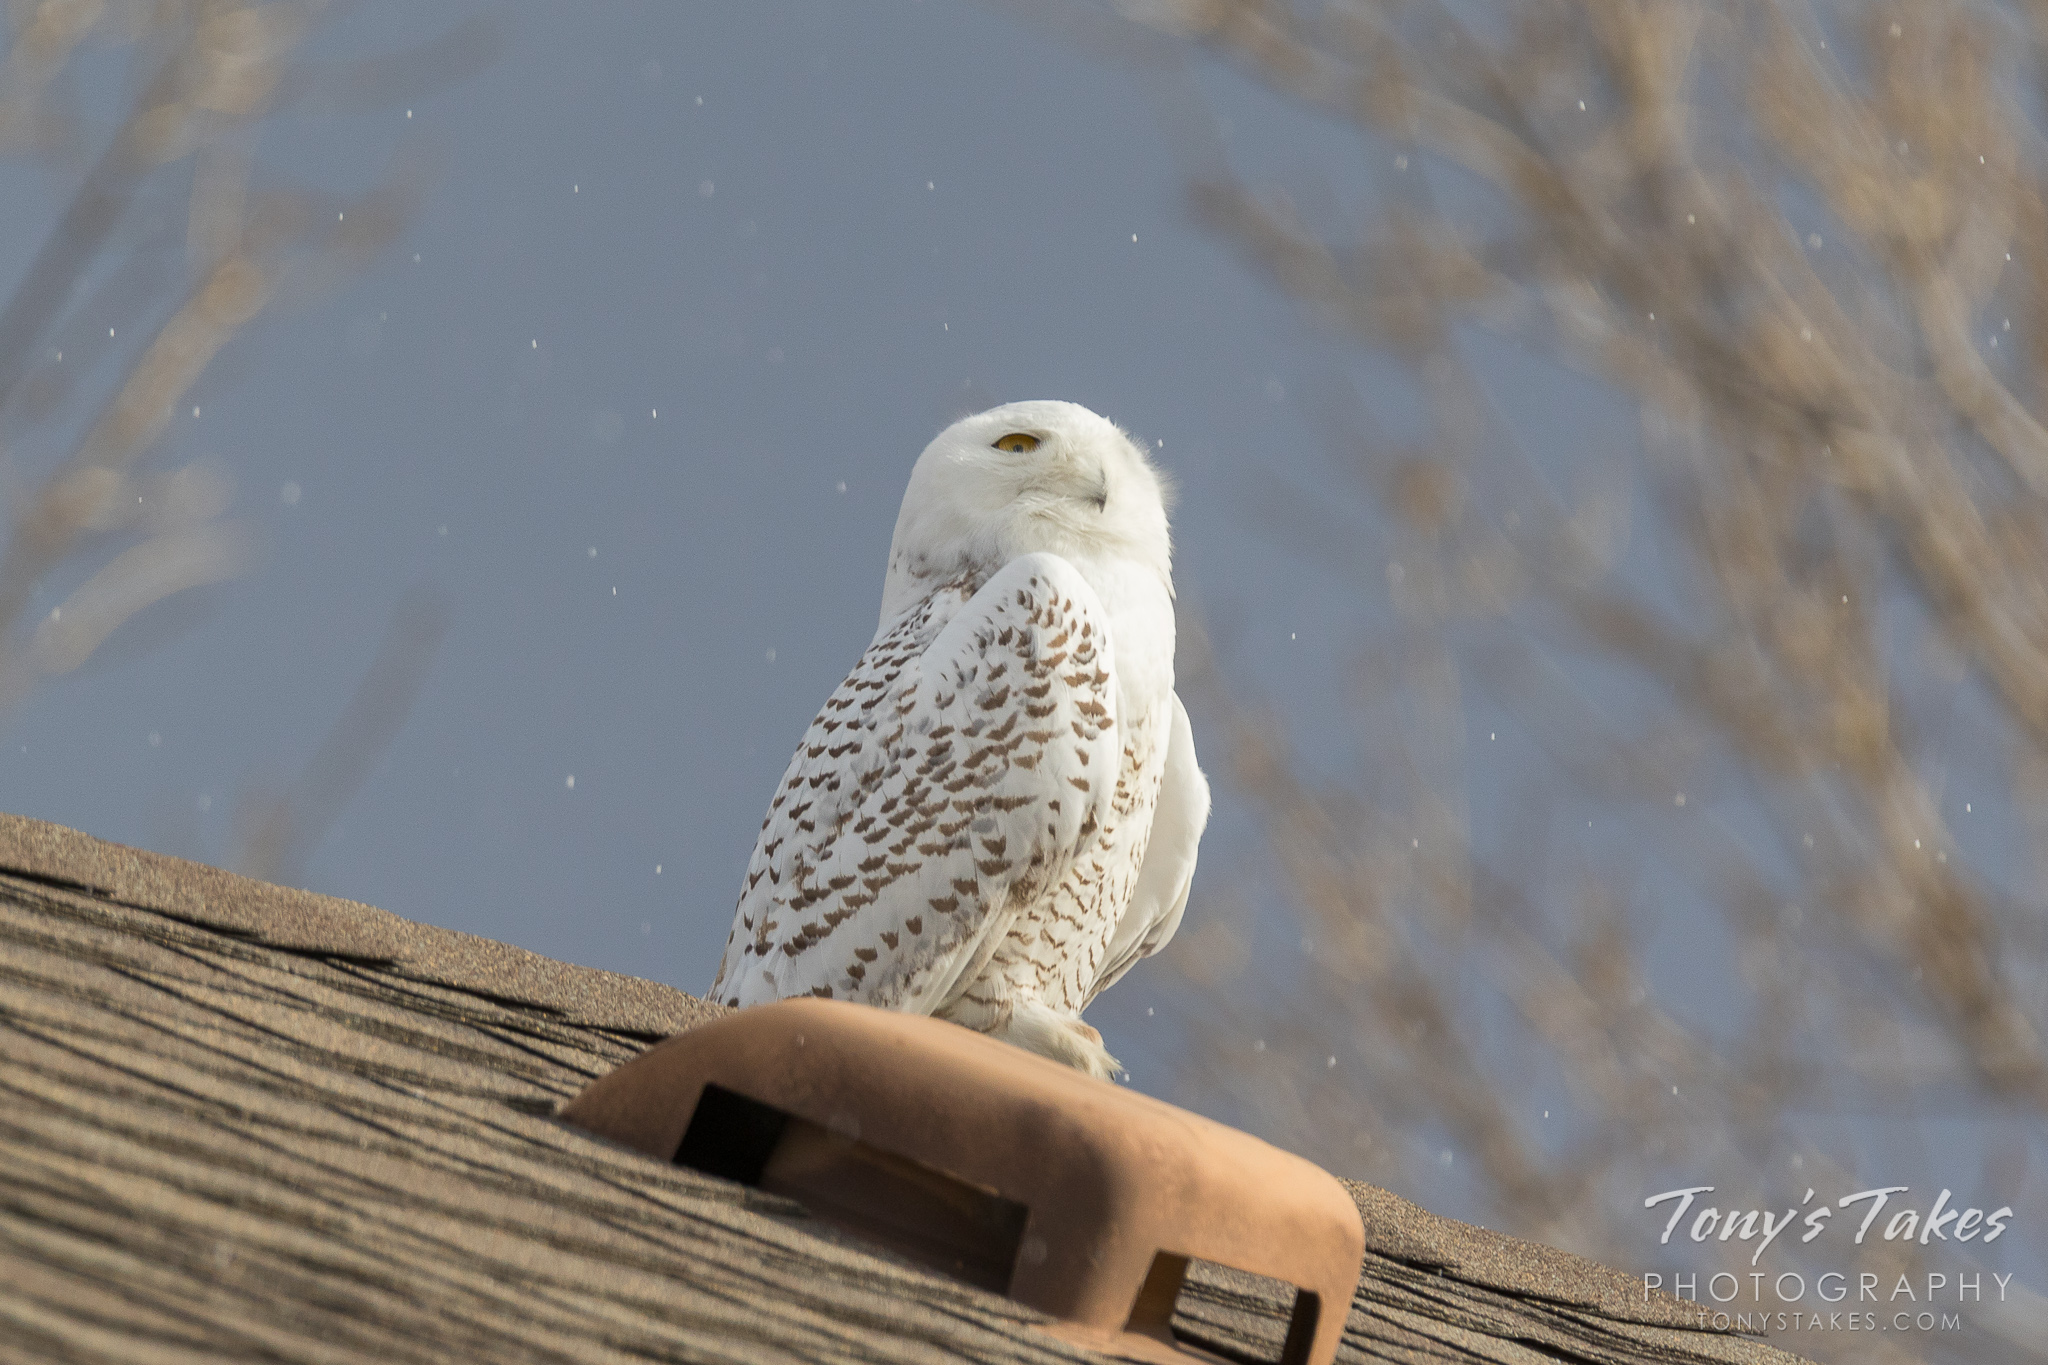 Snowy Owl enjoys a few snowflakes as a reminder of home